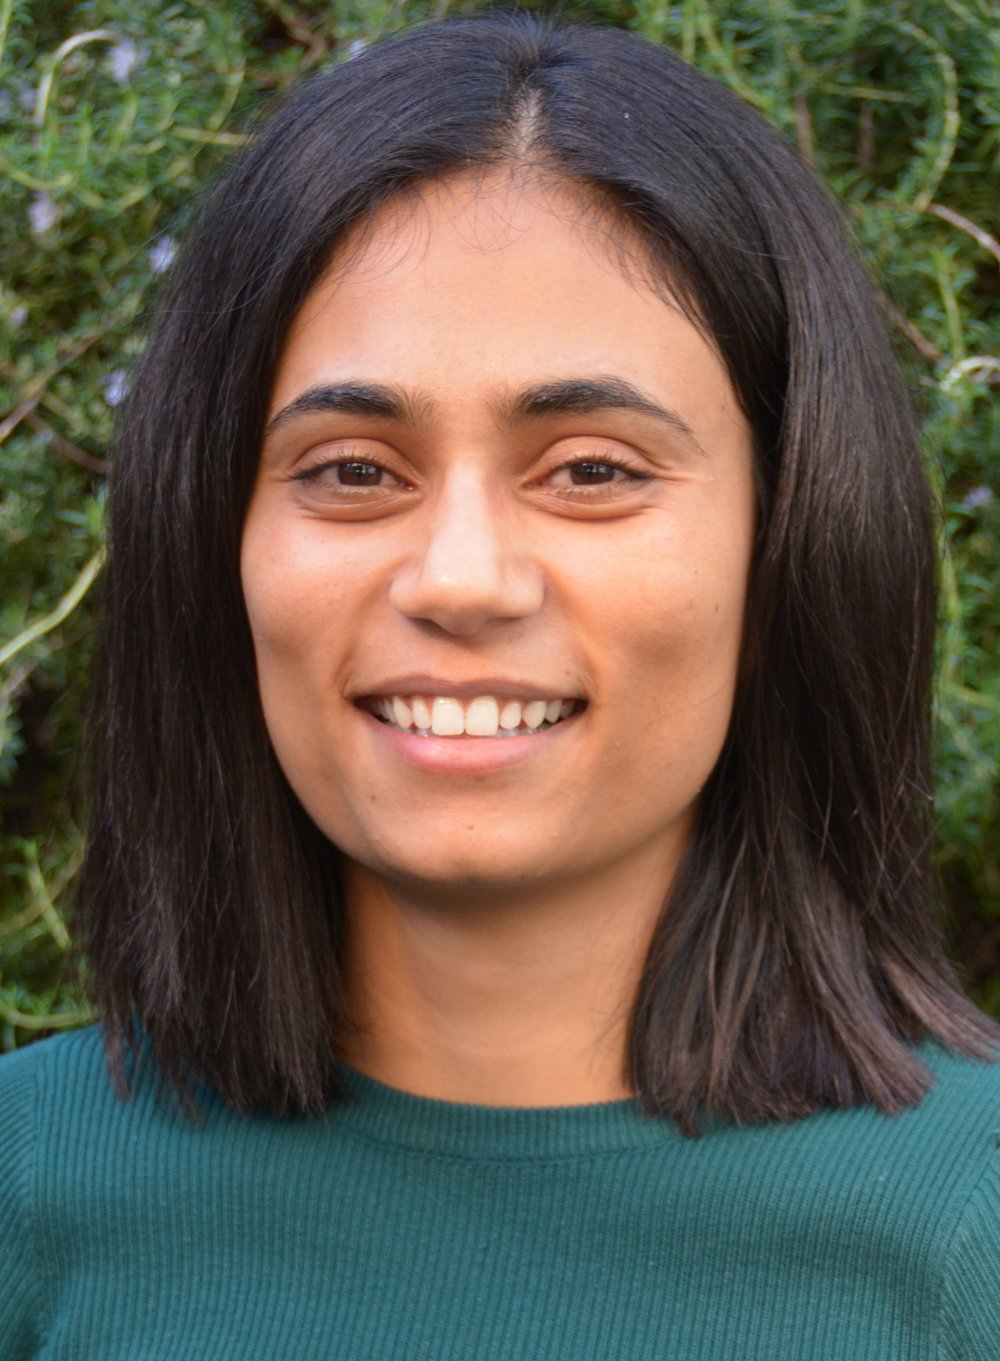 "<p align=""left"", style=""font-size:17px""><b>Kiran Parmar</b><br>Graduate Environmental Scientist<br><a href=""http://www.morphum.com/kiran-parmar"">>> View profile</a></p>"